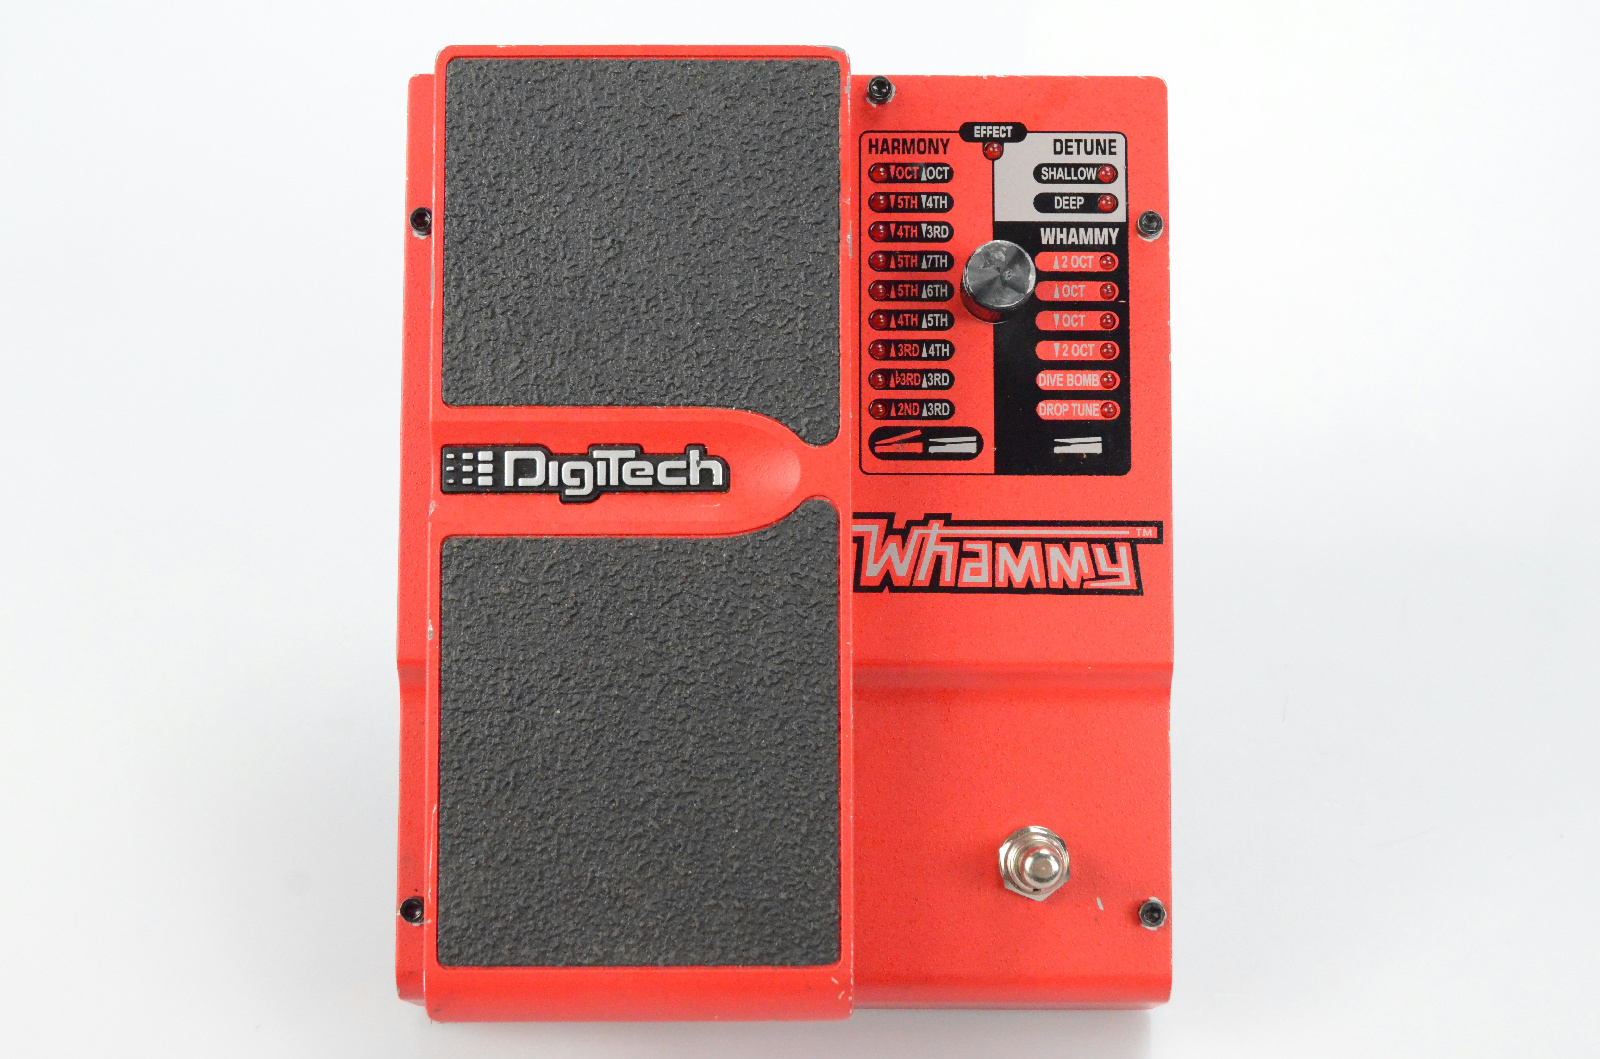 Digitech Whammy IV 4th Generation Guitar Effect Pedal Owned by Papa Roach #33223